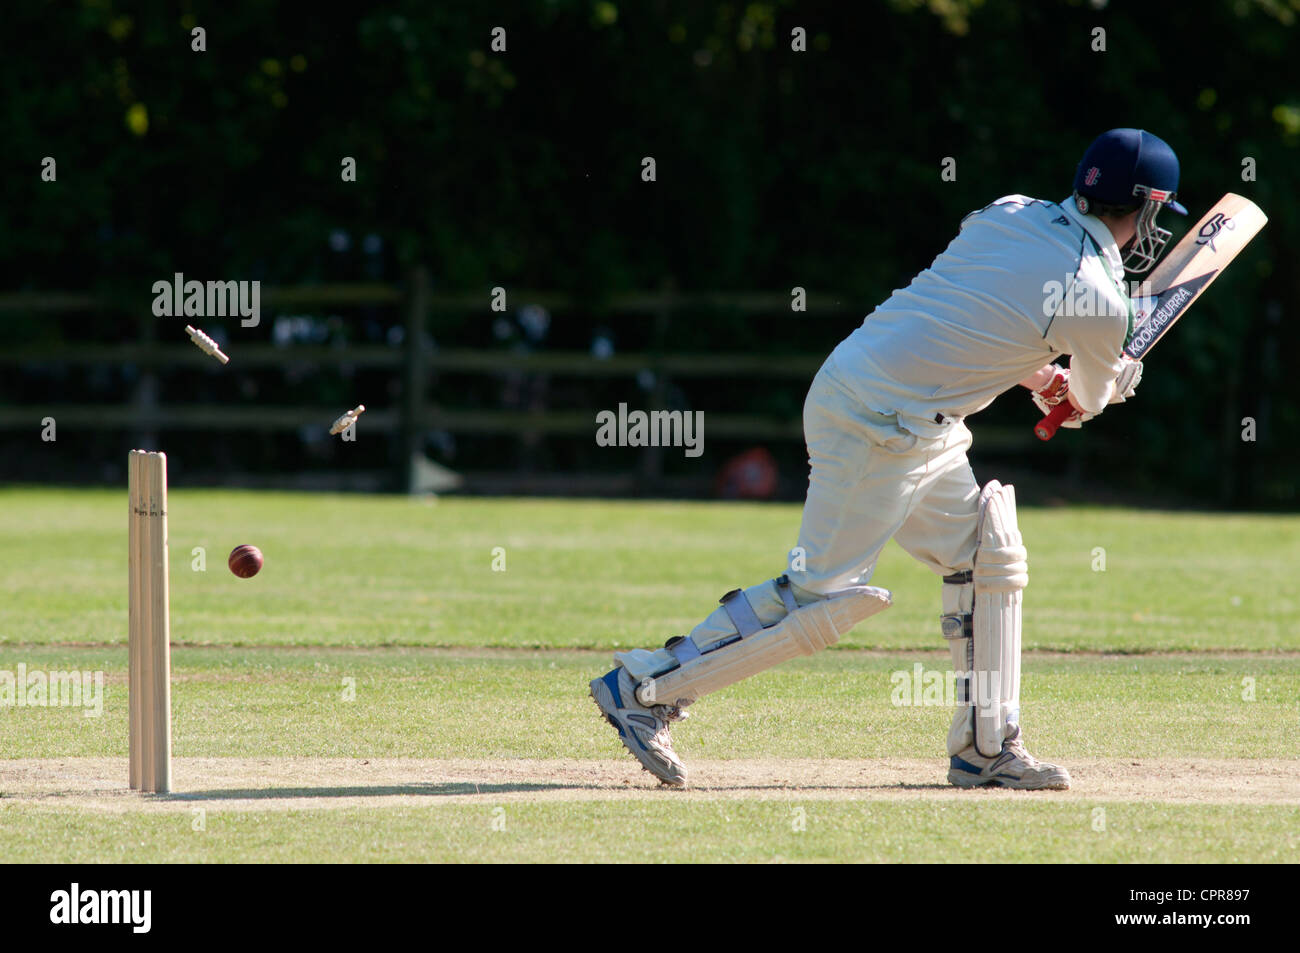 Batsman bowled out with bails flying - Stock Image